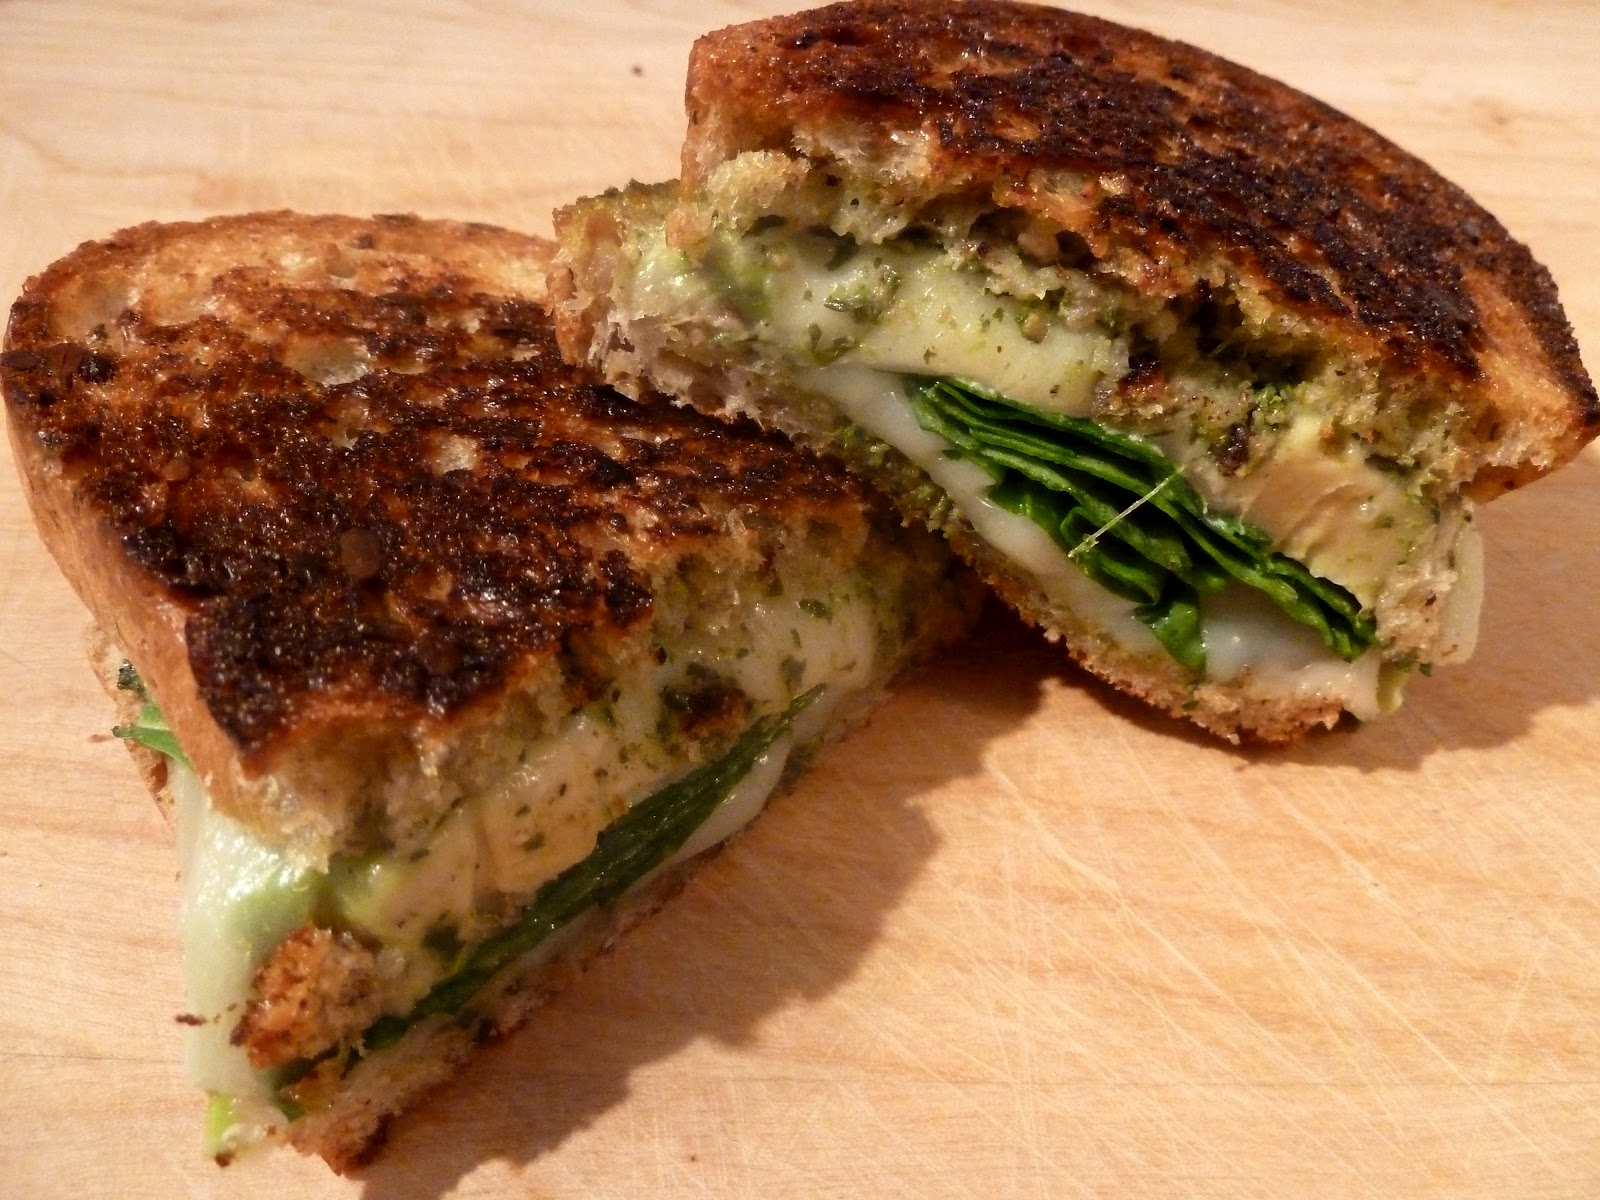 Cracked Pepper: Grilled Cheese with Pesto, Spinach and Avocado